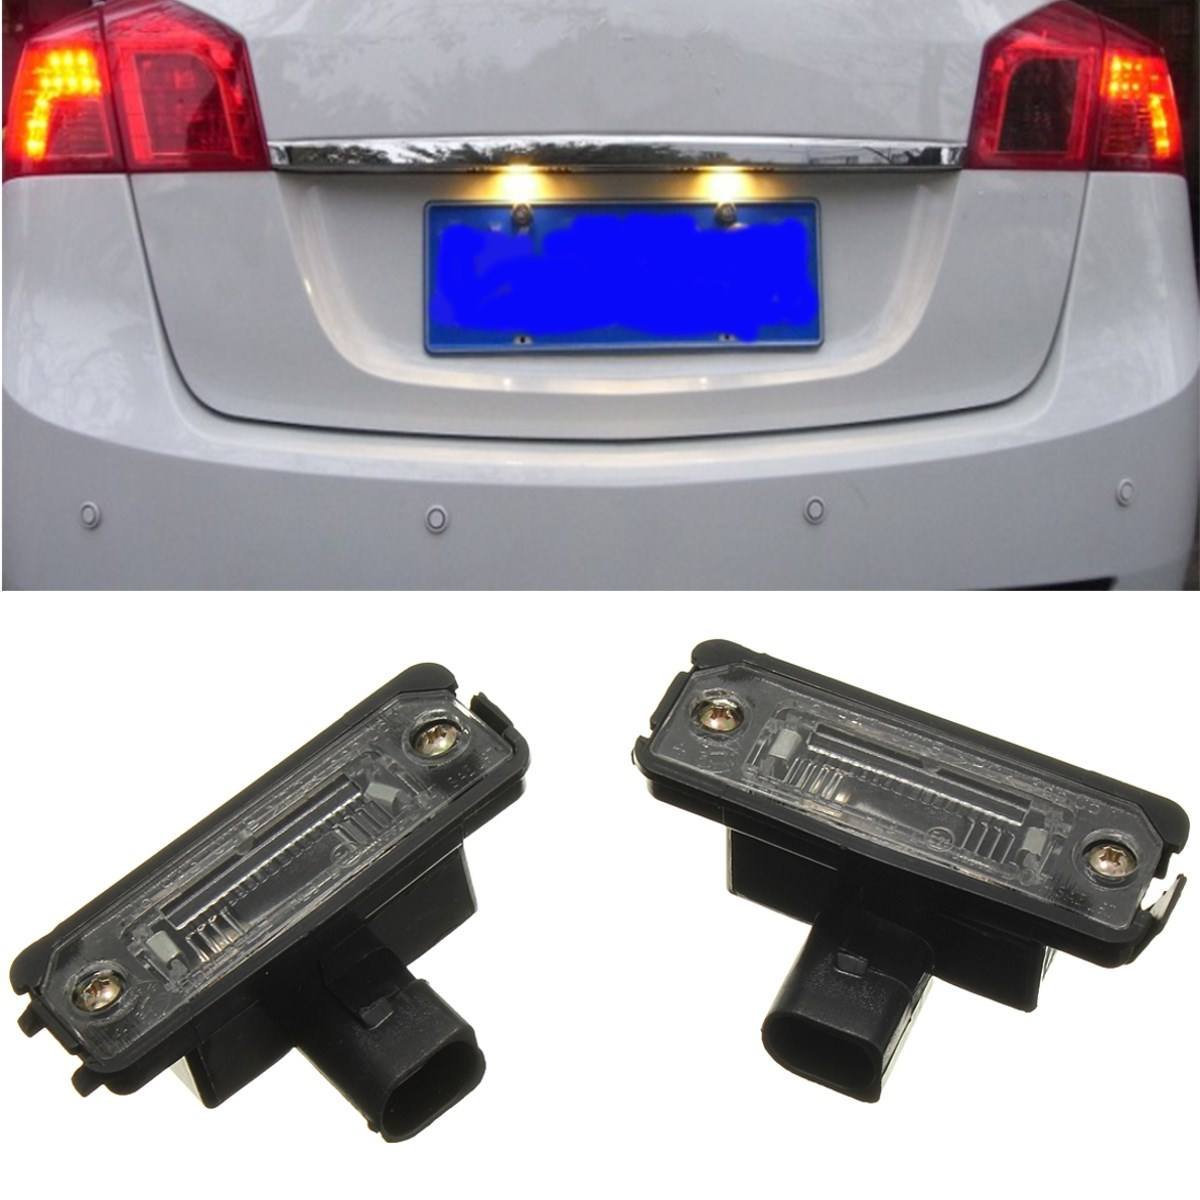 2X Oem License Number Plate Light Lamps For VW Smd LED For Volkswagen Golf 4 5 6 For Jetta For Polo For Passat B6 2x 3smd5050 for volkswagen passat jetta golf plus touran caddy led license number plate light for automotive auto accessories